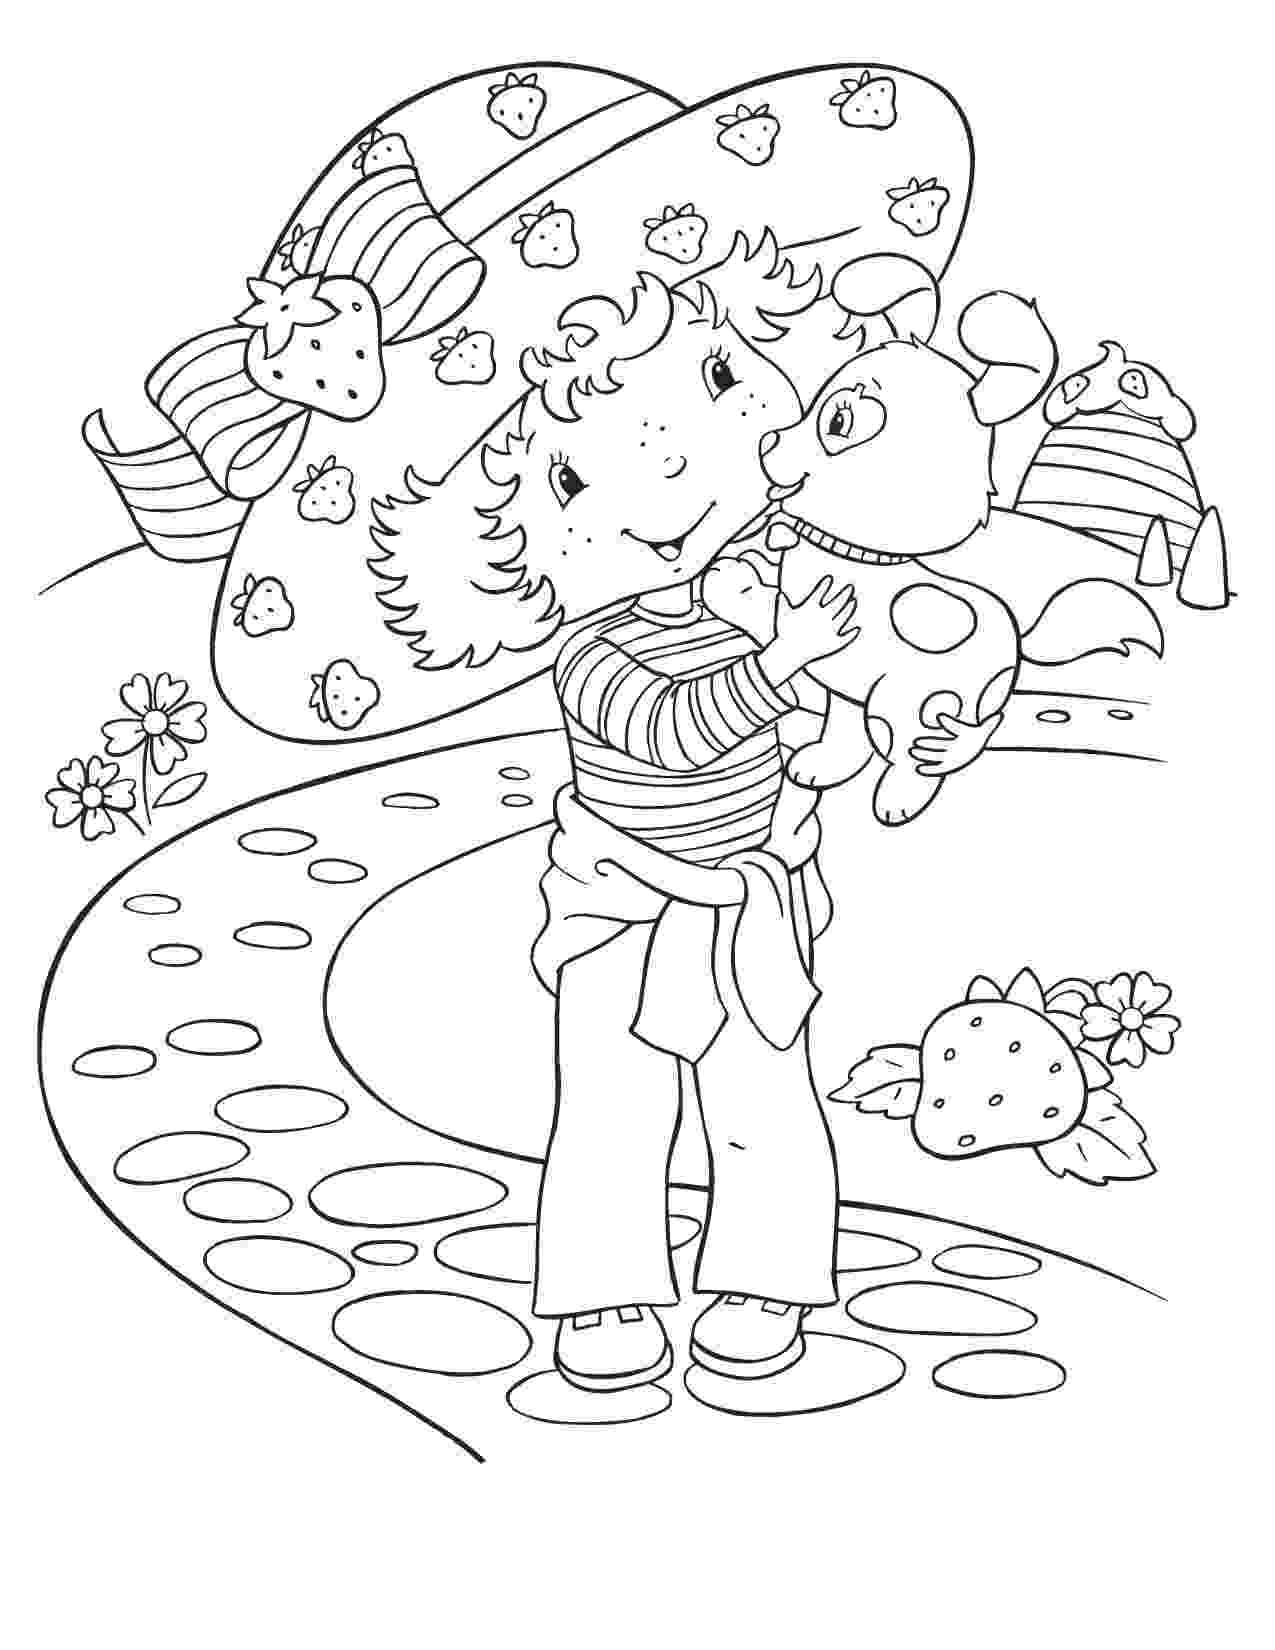 strawberry shortcake colouring pictures 17 best images about strawberry shortcake on pinterest shortcake pictures strawberry colouring